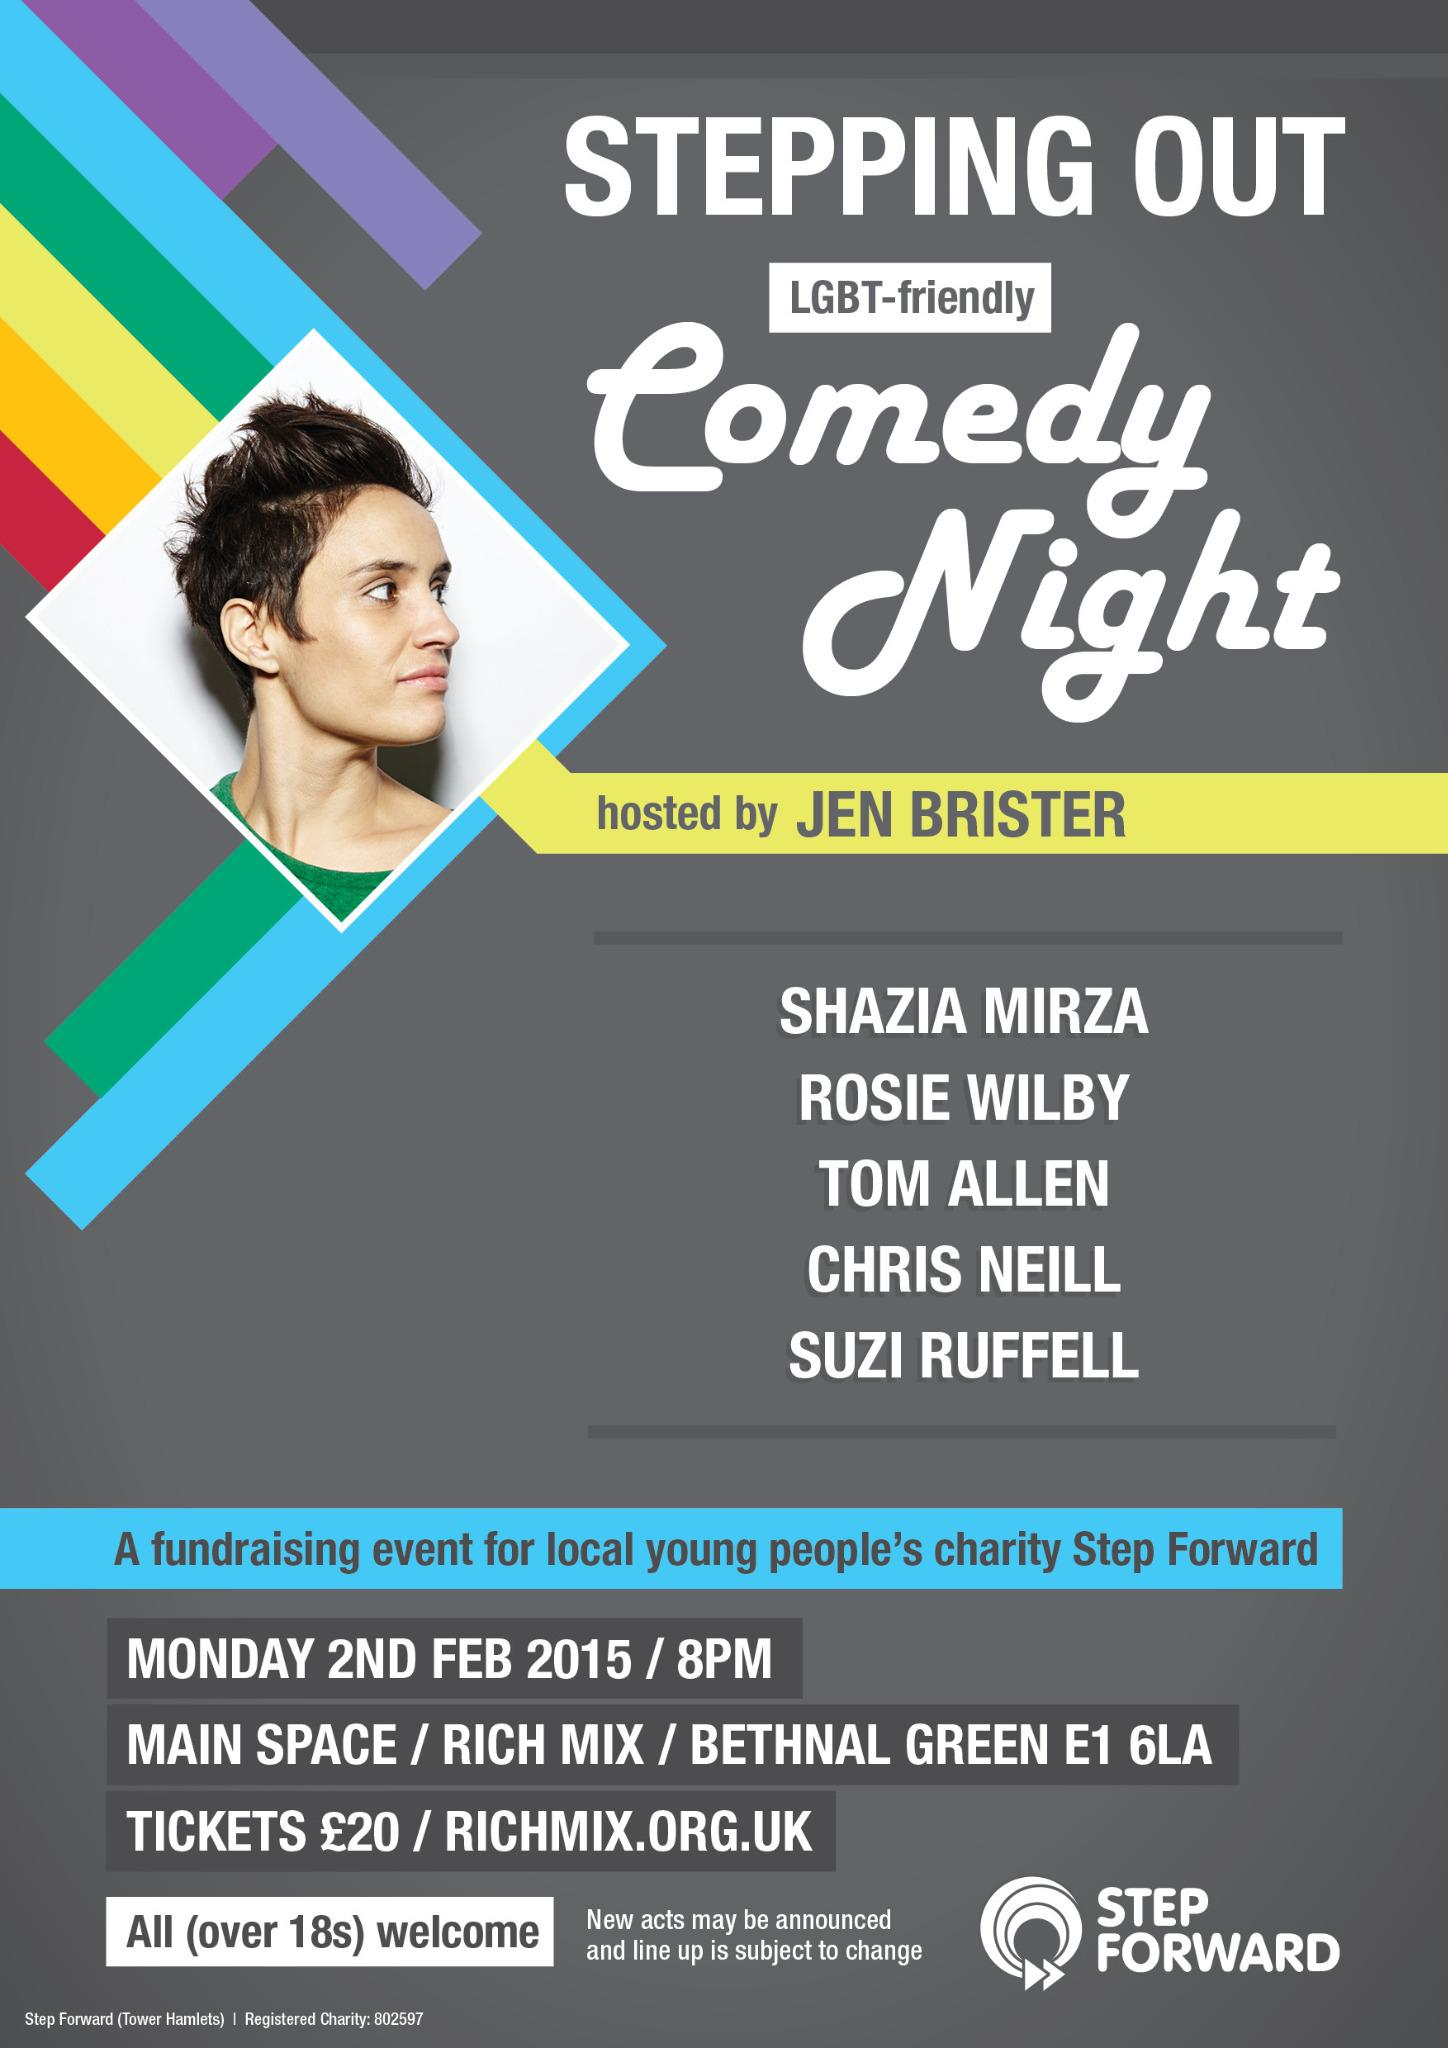 RT @step_forward: Join the hilarious @JenBrister for our comedy night fundraiser next Monday - ticket info here: http://t.co/RlOypiwsk8 htt…